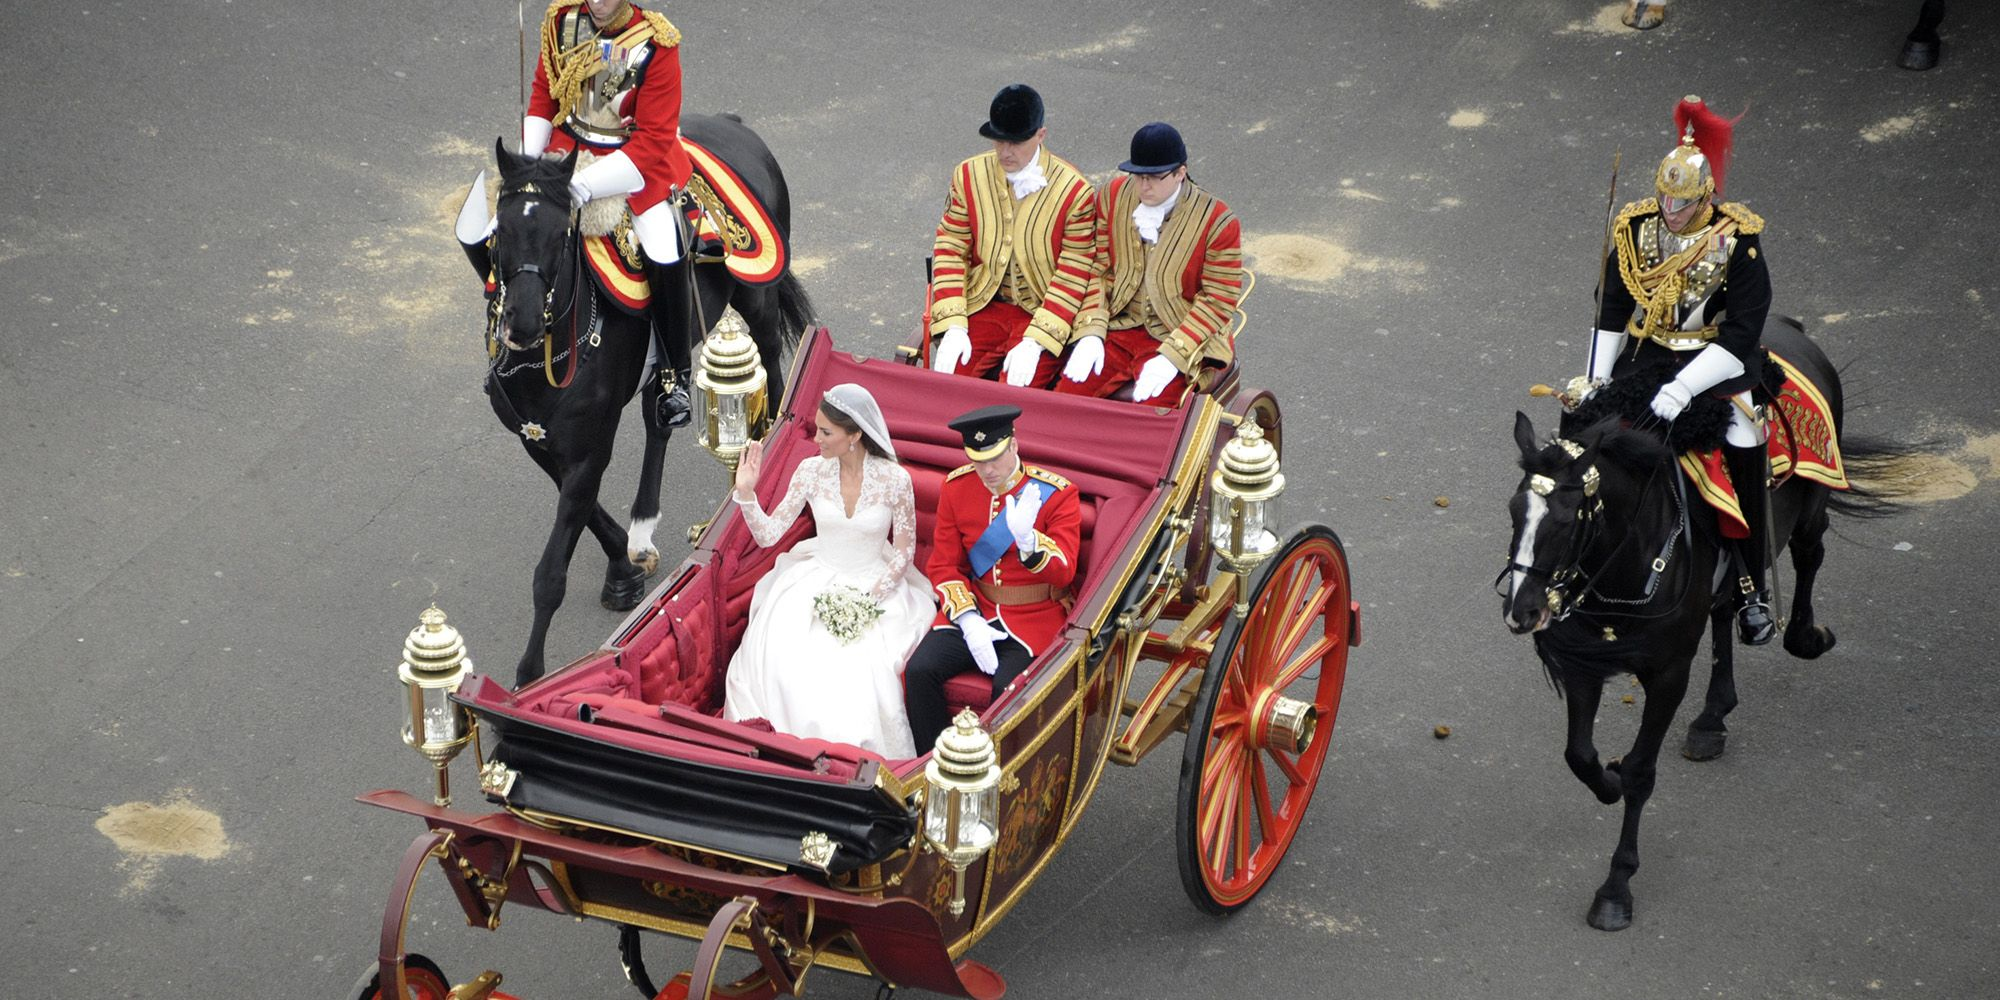 8f7f501c24da2 Kate Middleton and Prince William Wedding Photos - Royal Wedding 2011  Pictures